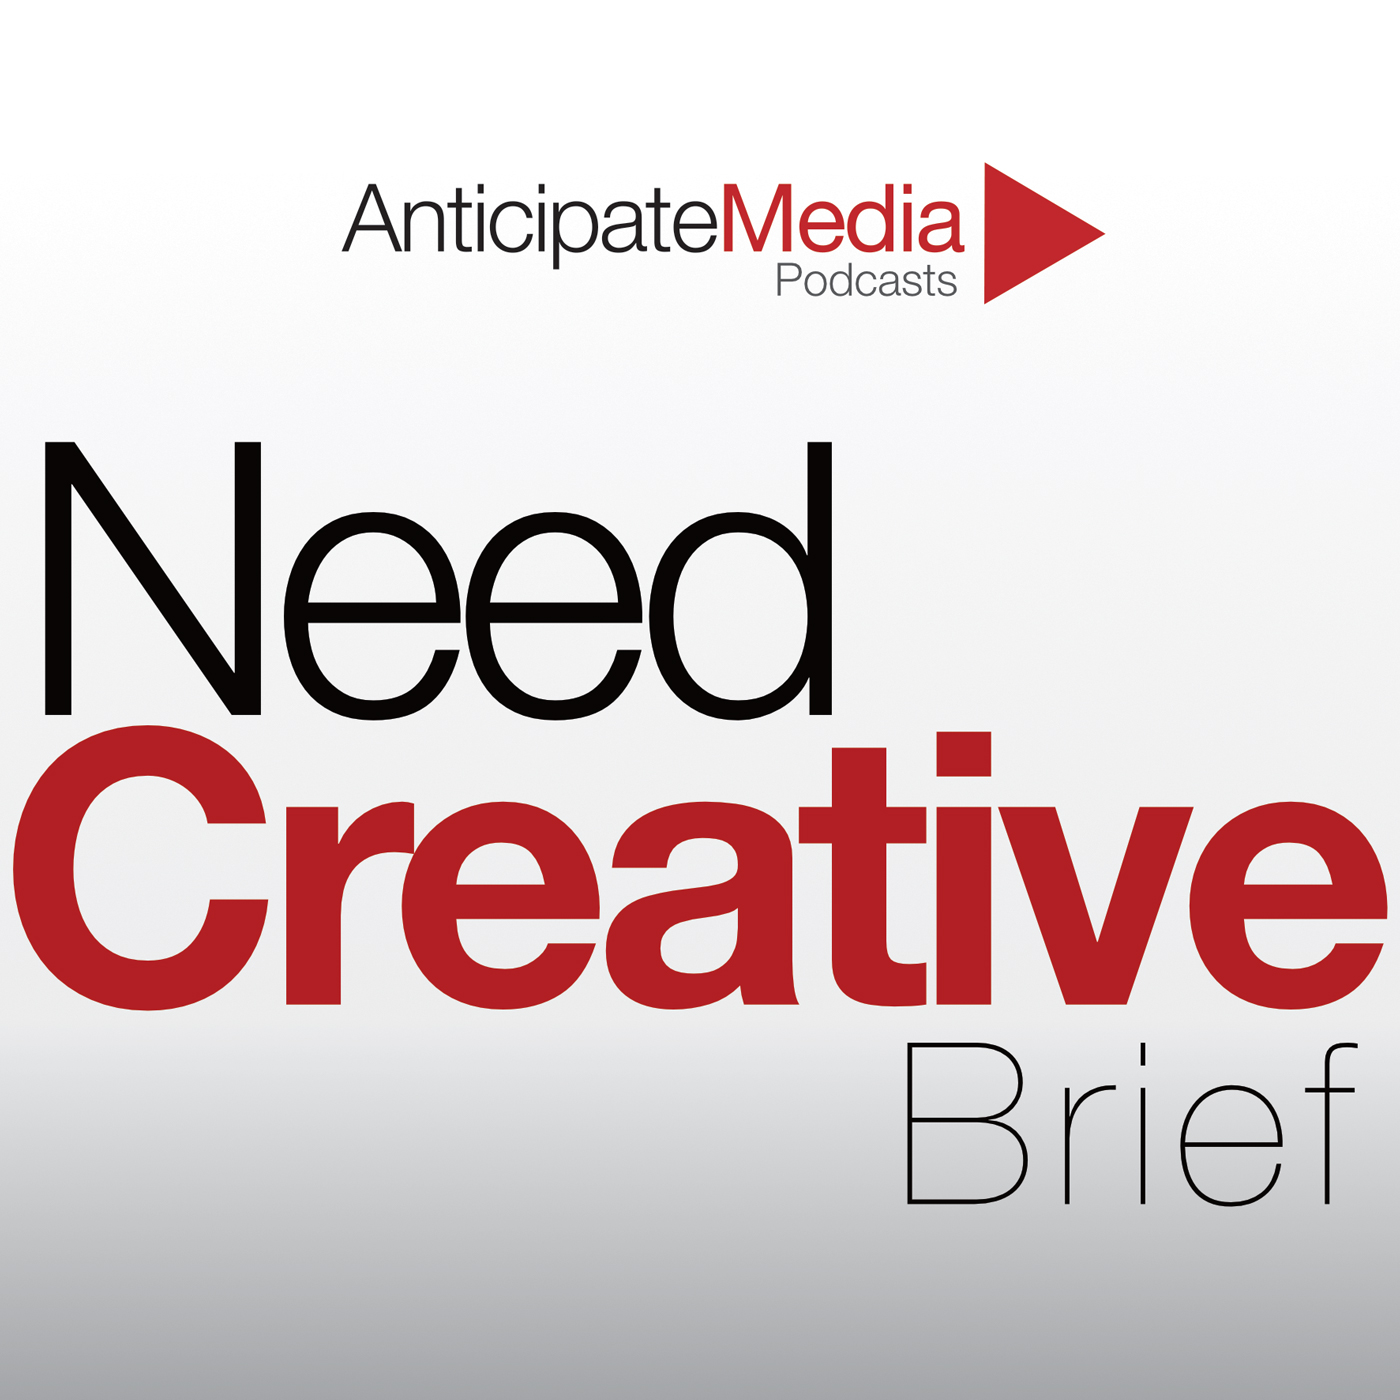 NeedCreative Brief Podcast - Anticipate Media